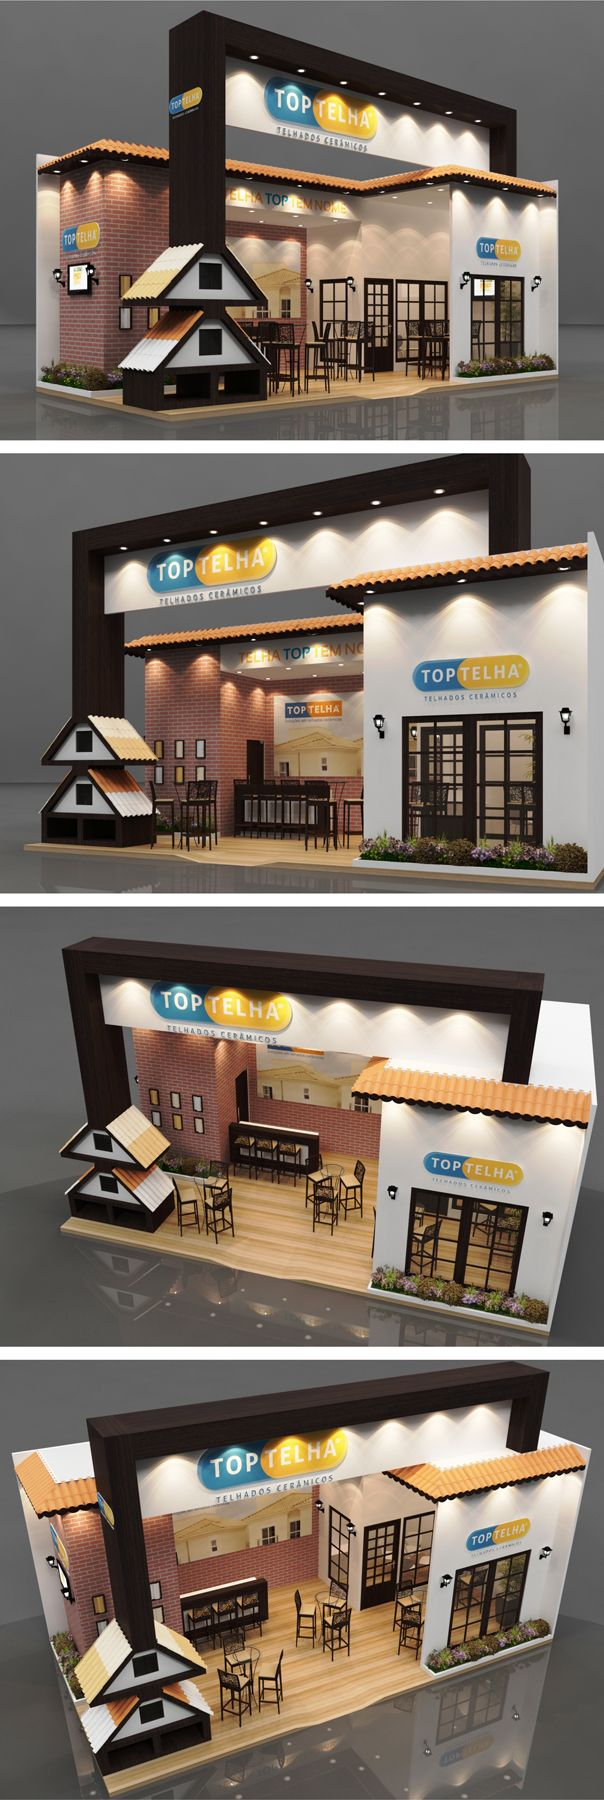 Eye-catching exhibition stand design